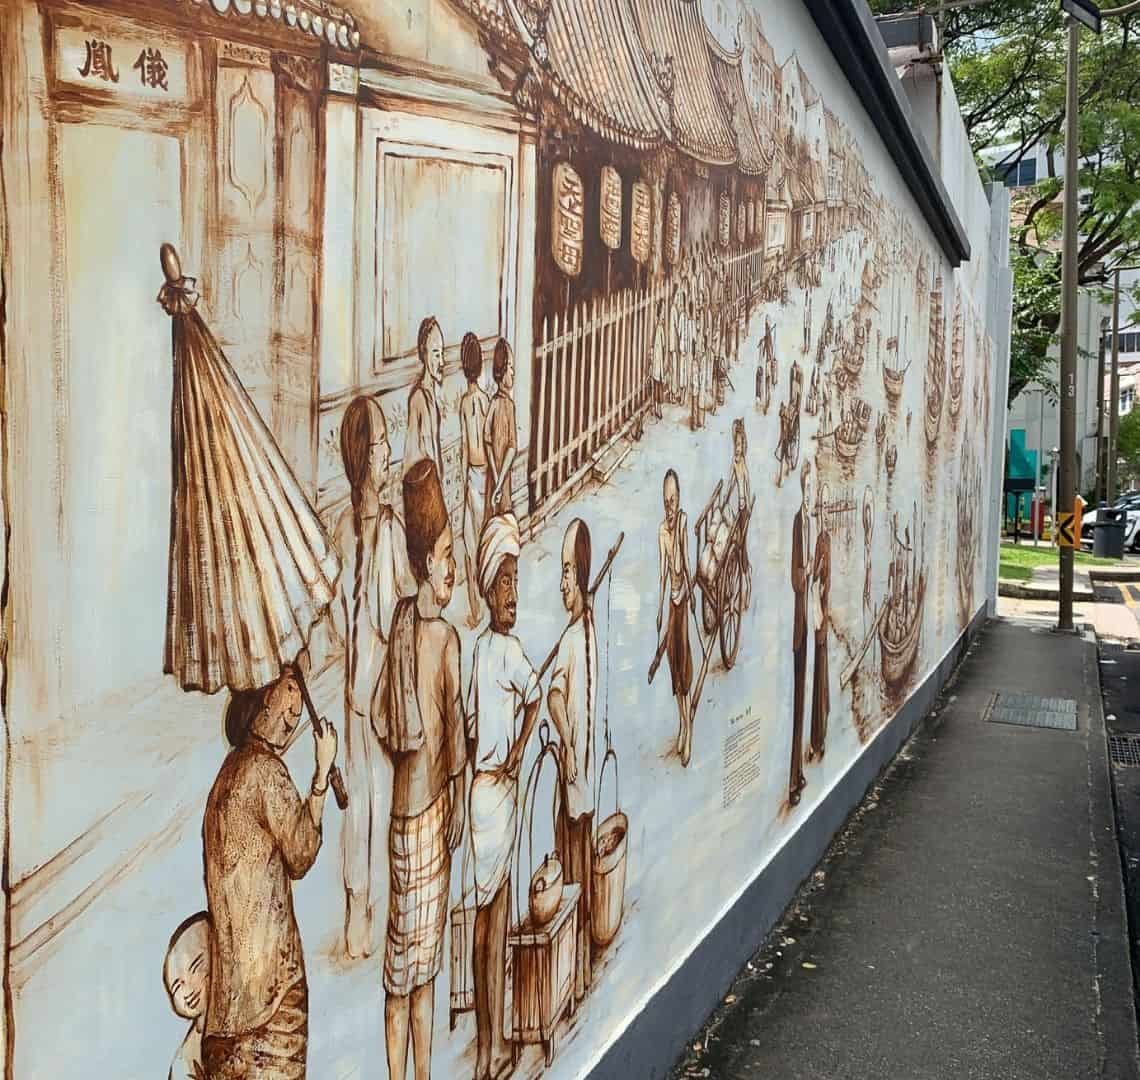 Sepia coloured wall mural by Yip Yew  Chong depicting life at the waterfront